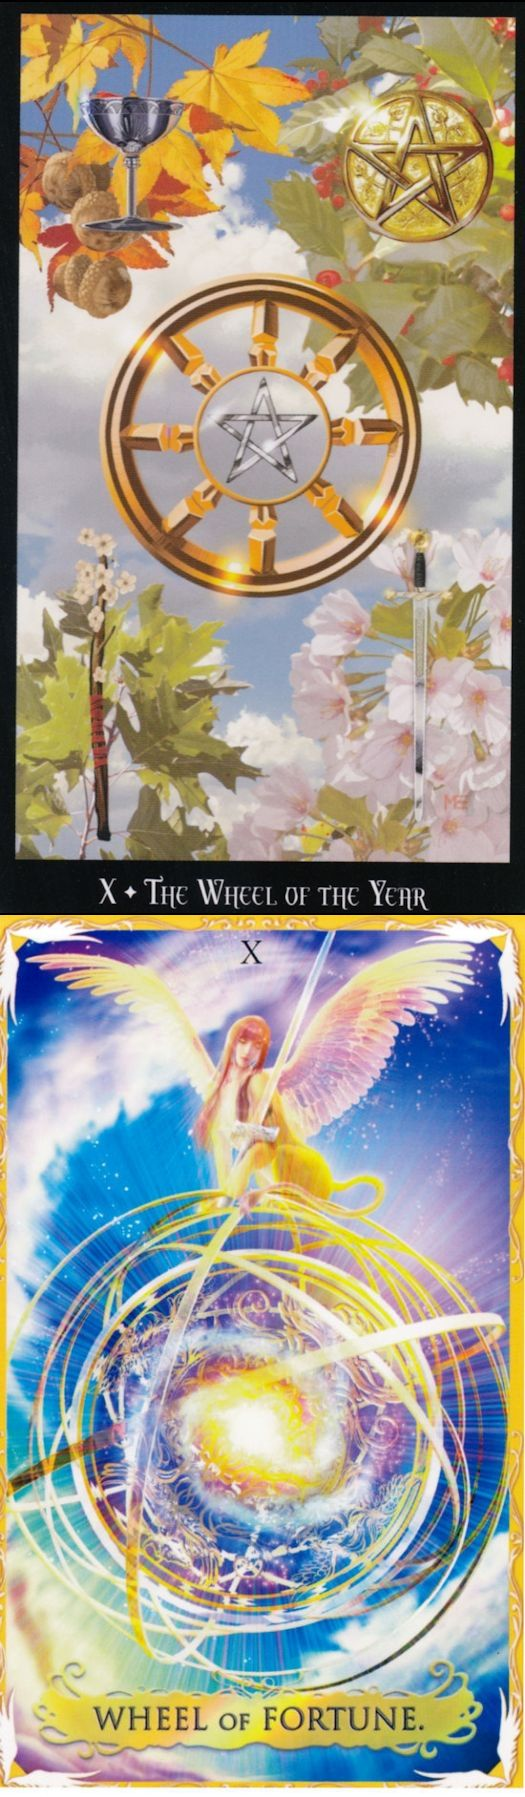 WHEEL OF FORTUNE: cycles and helplessness (reverse). Witches Tarot deck and Alchemia Tarot deck: lotus tarot free reading online, tarot card yes or no and three tarot card reading. Best 2018 predictions of the future and tarot cards art. #paganism #wicca #thesun #iosapplication